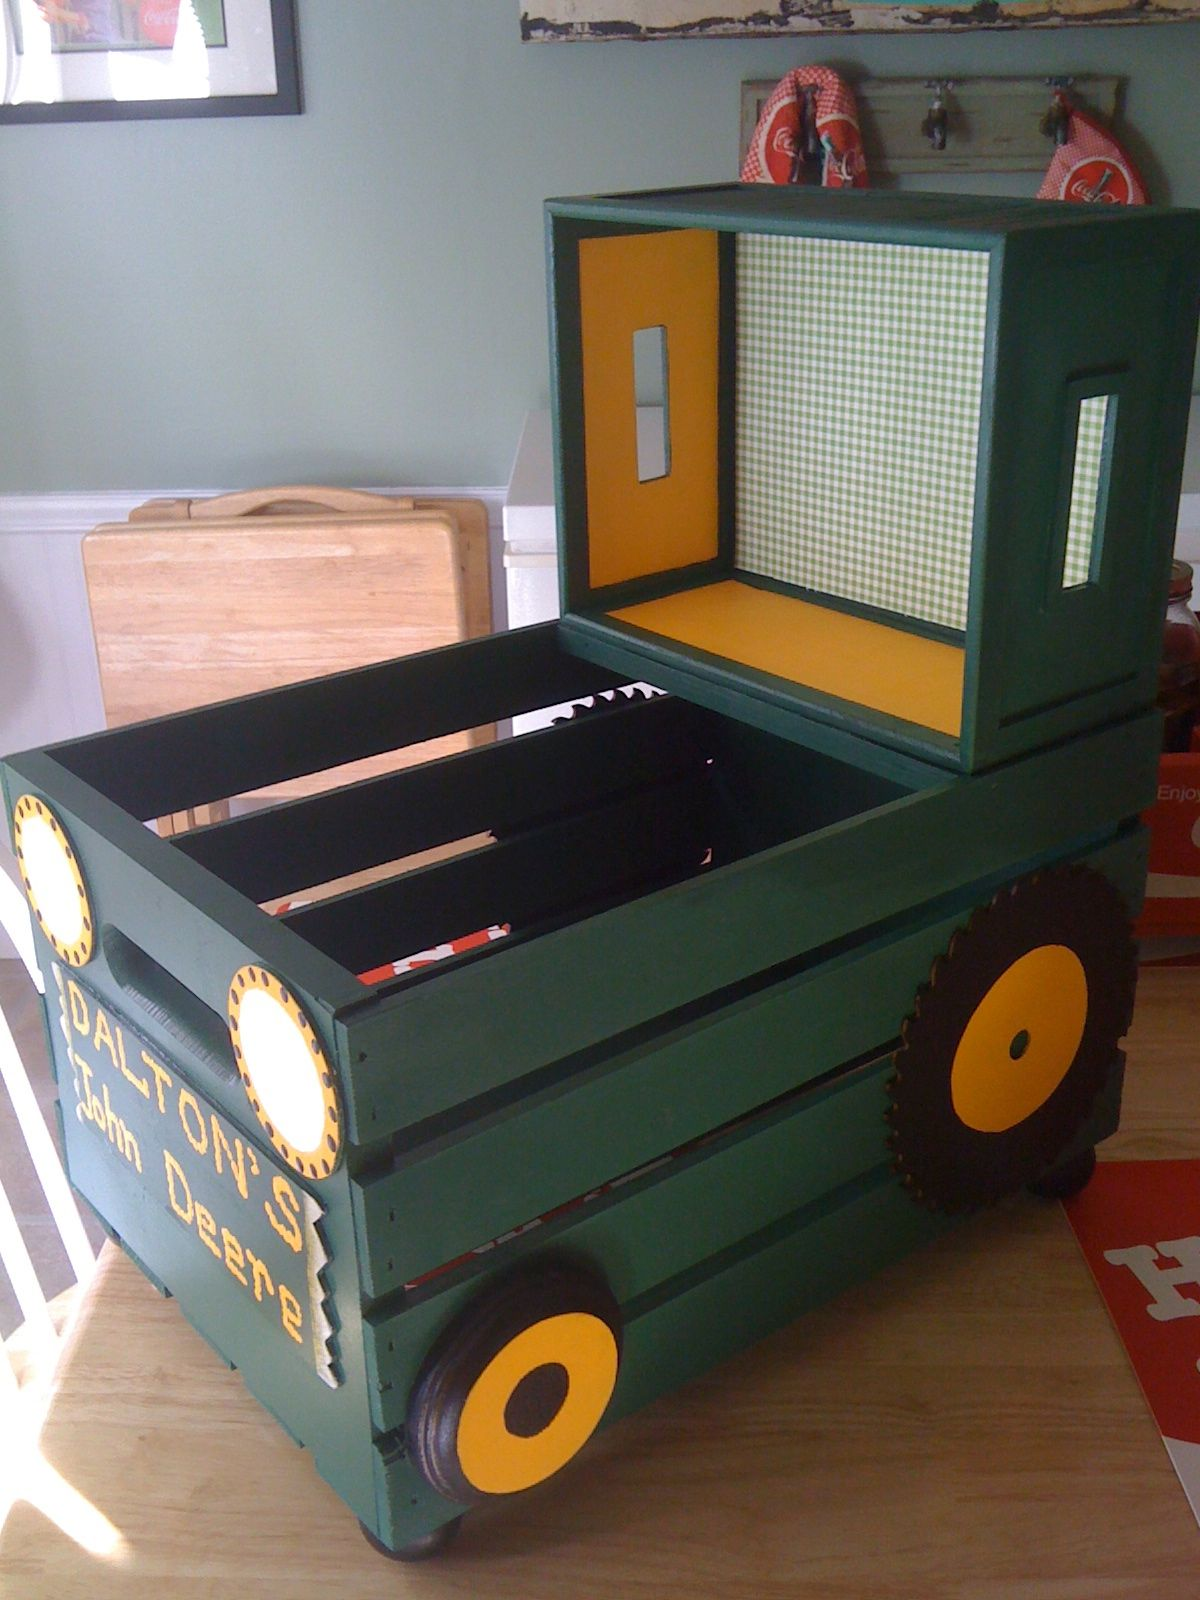 i made this tractor out of a crate and a wooden box (for the